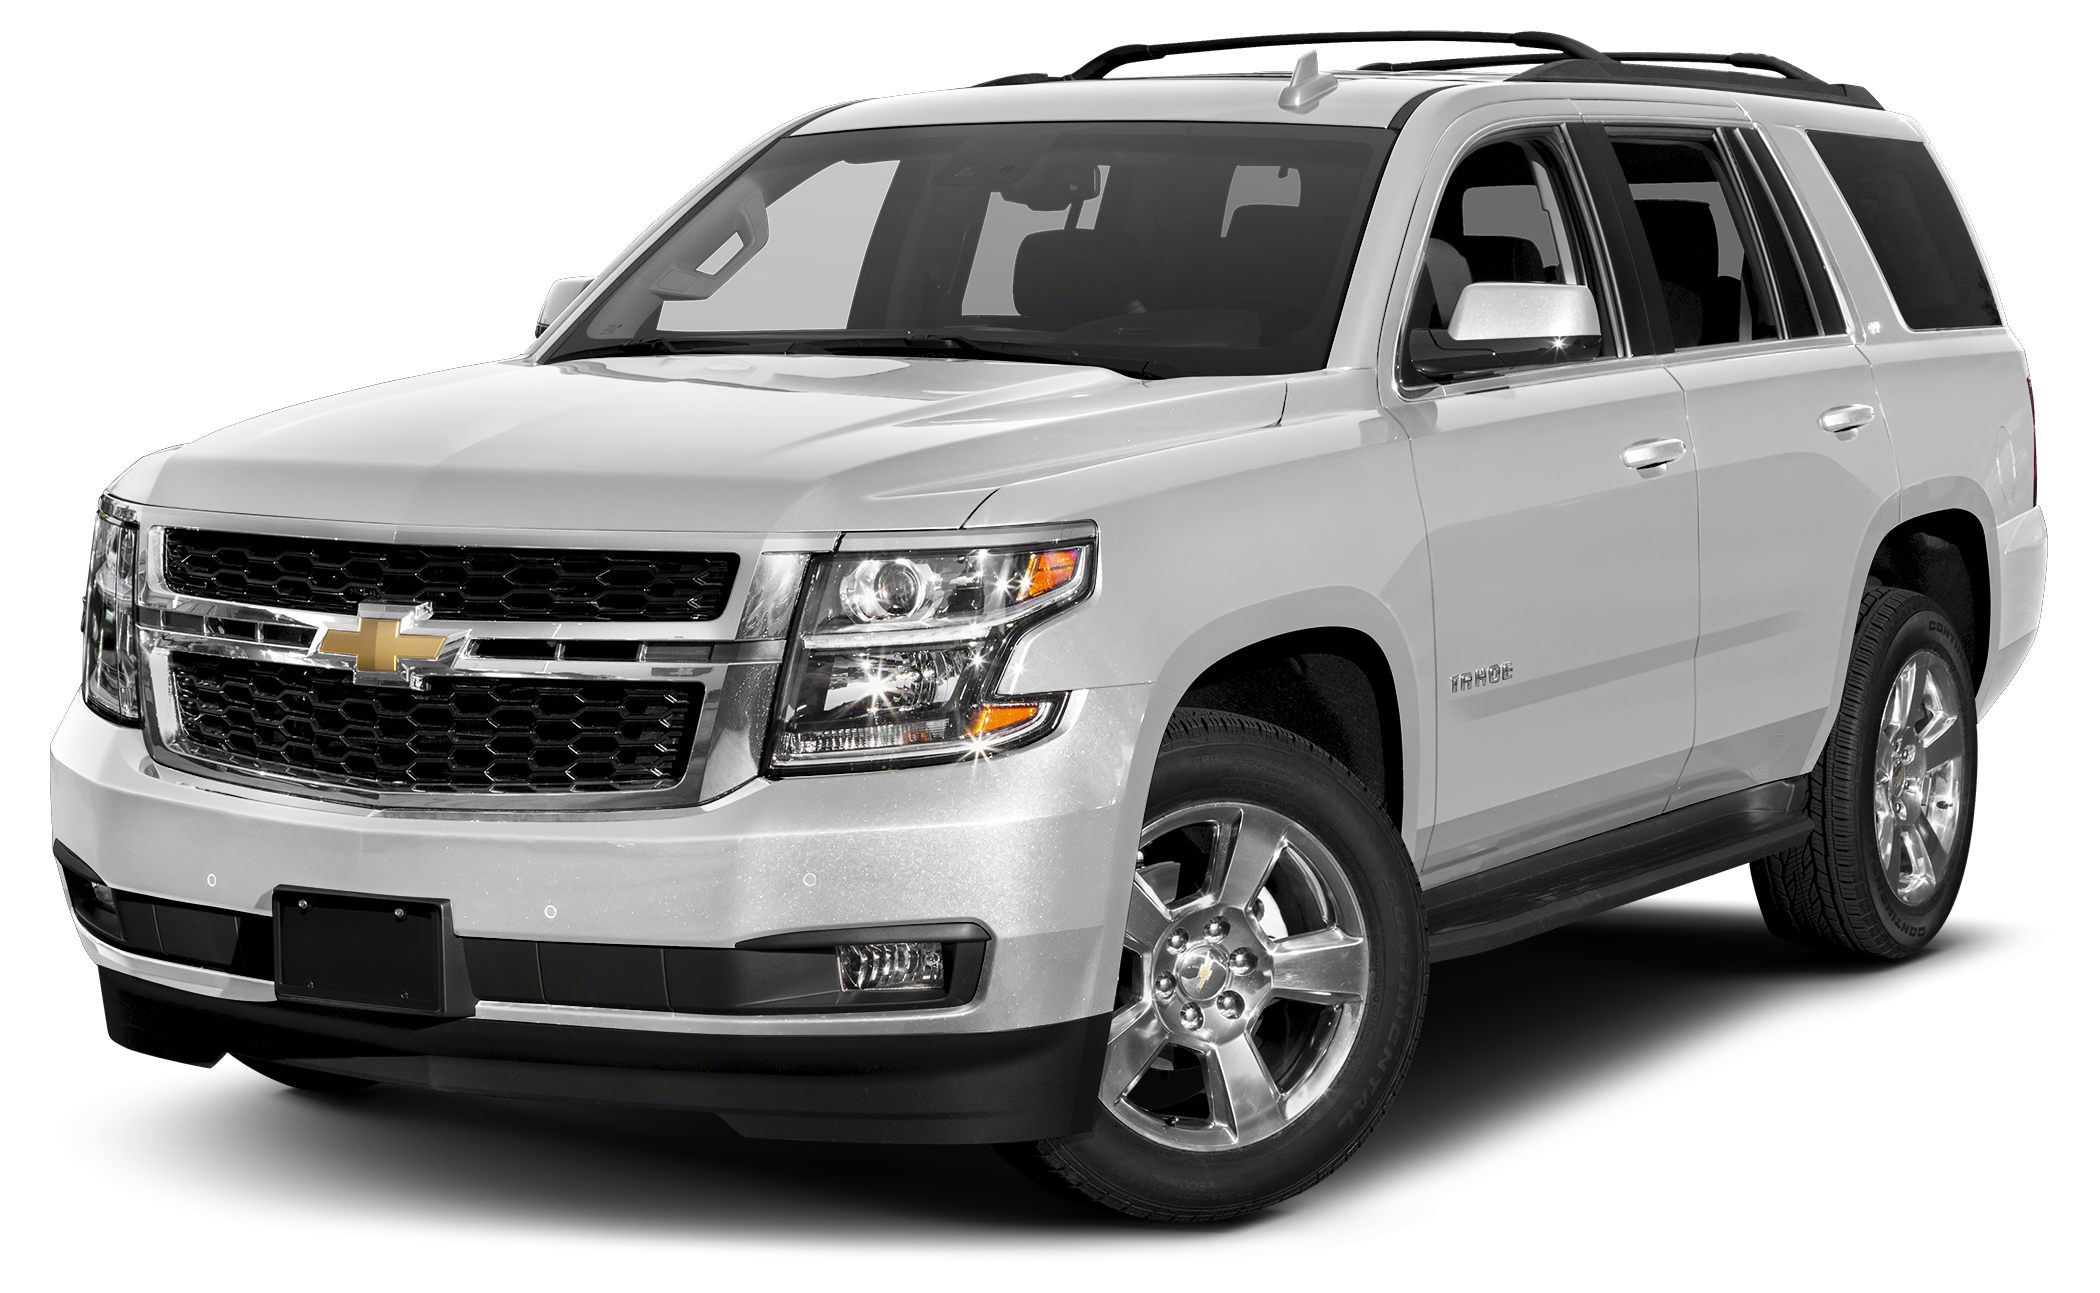 2015 Chevrolet Tahoe LT Excellent Condition Nav System Heated Leather Seats Rear Air Power Lif